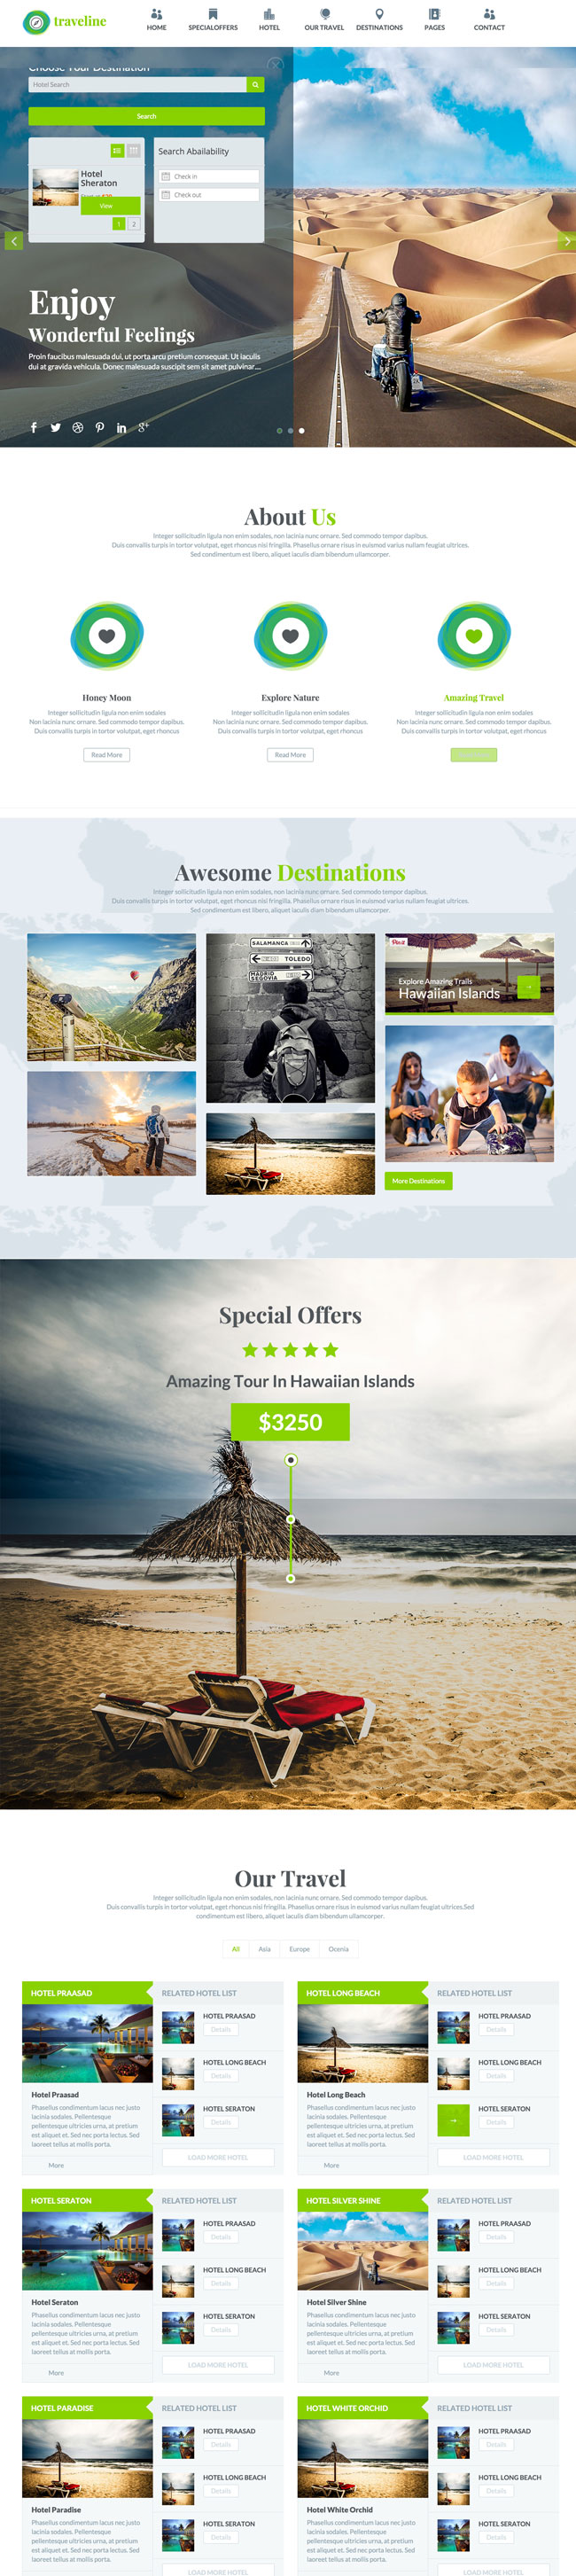 Traveline-Travel-Hotel-Booking-WordPress-Theme